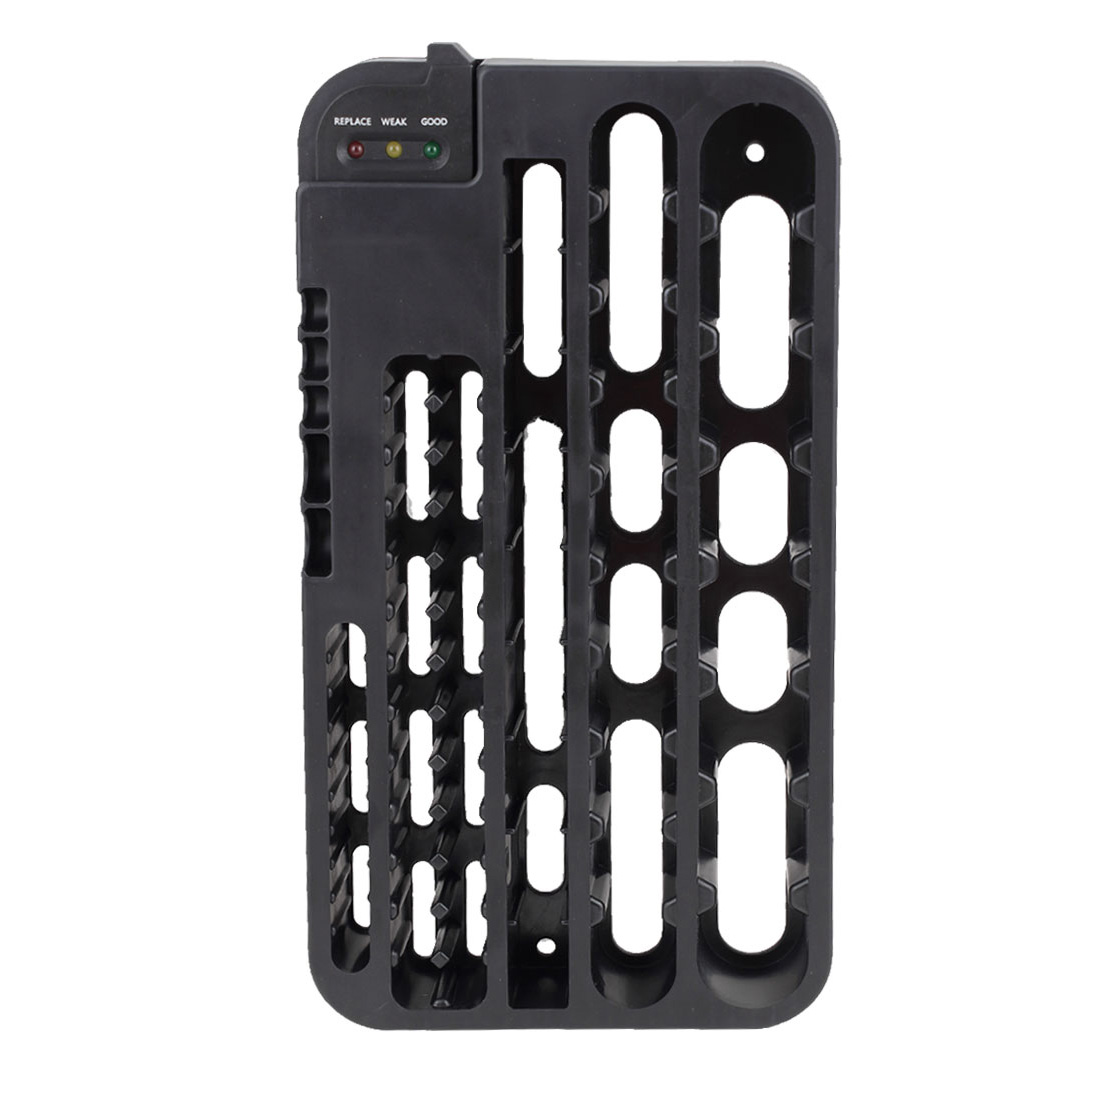 Battery Organizer Removable Batteries Tester Wall Mount AAA/AA/C/D 9V Holder Storage 72 Batteries Rack